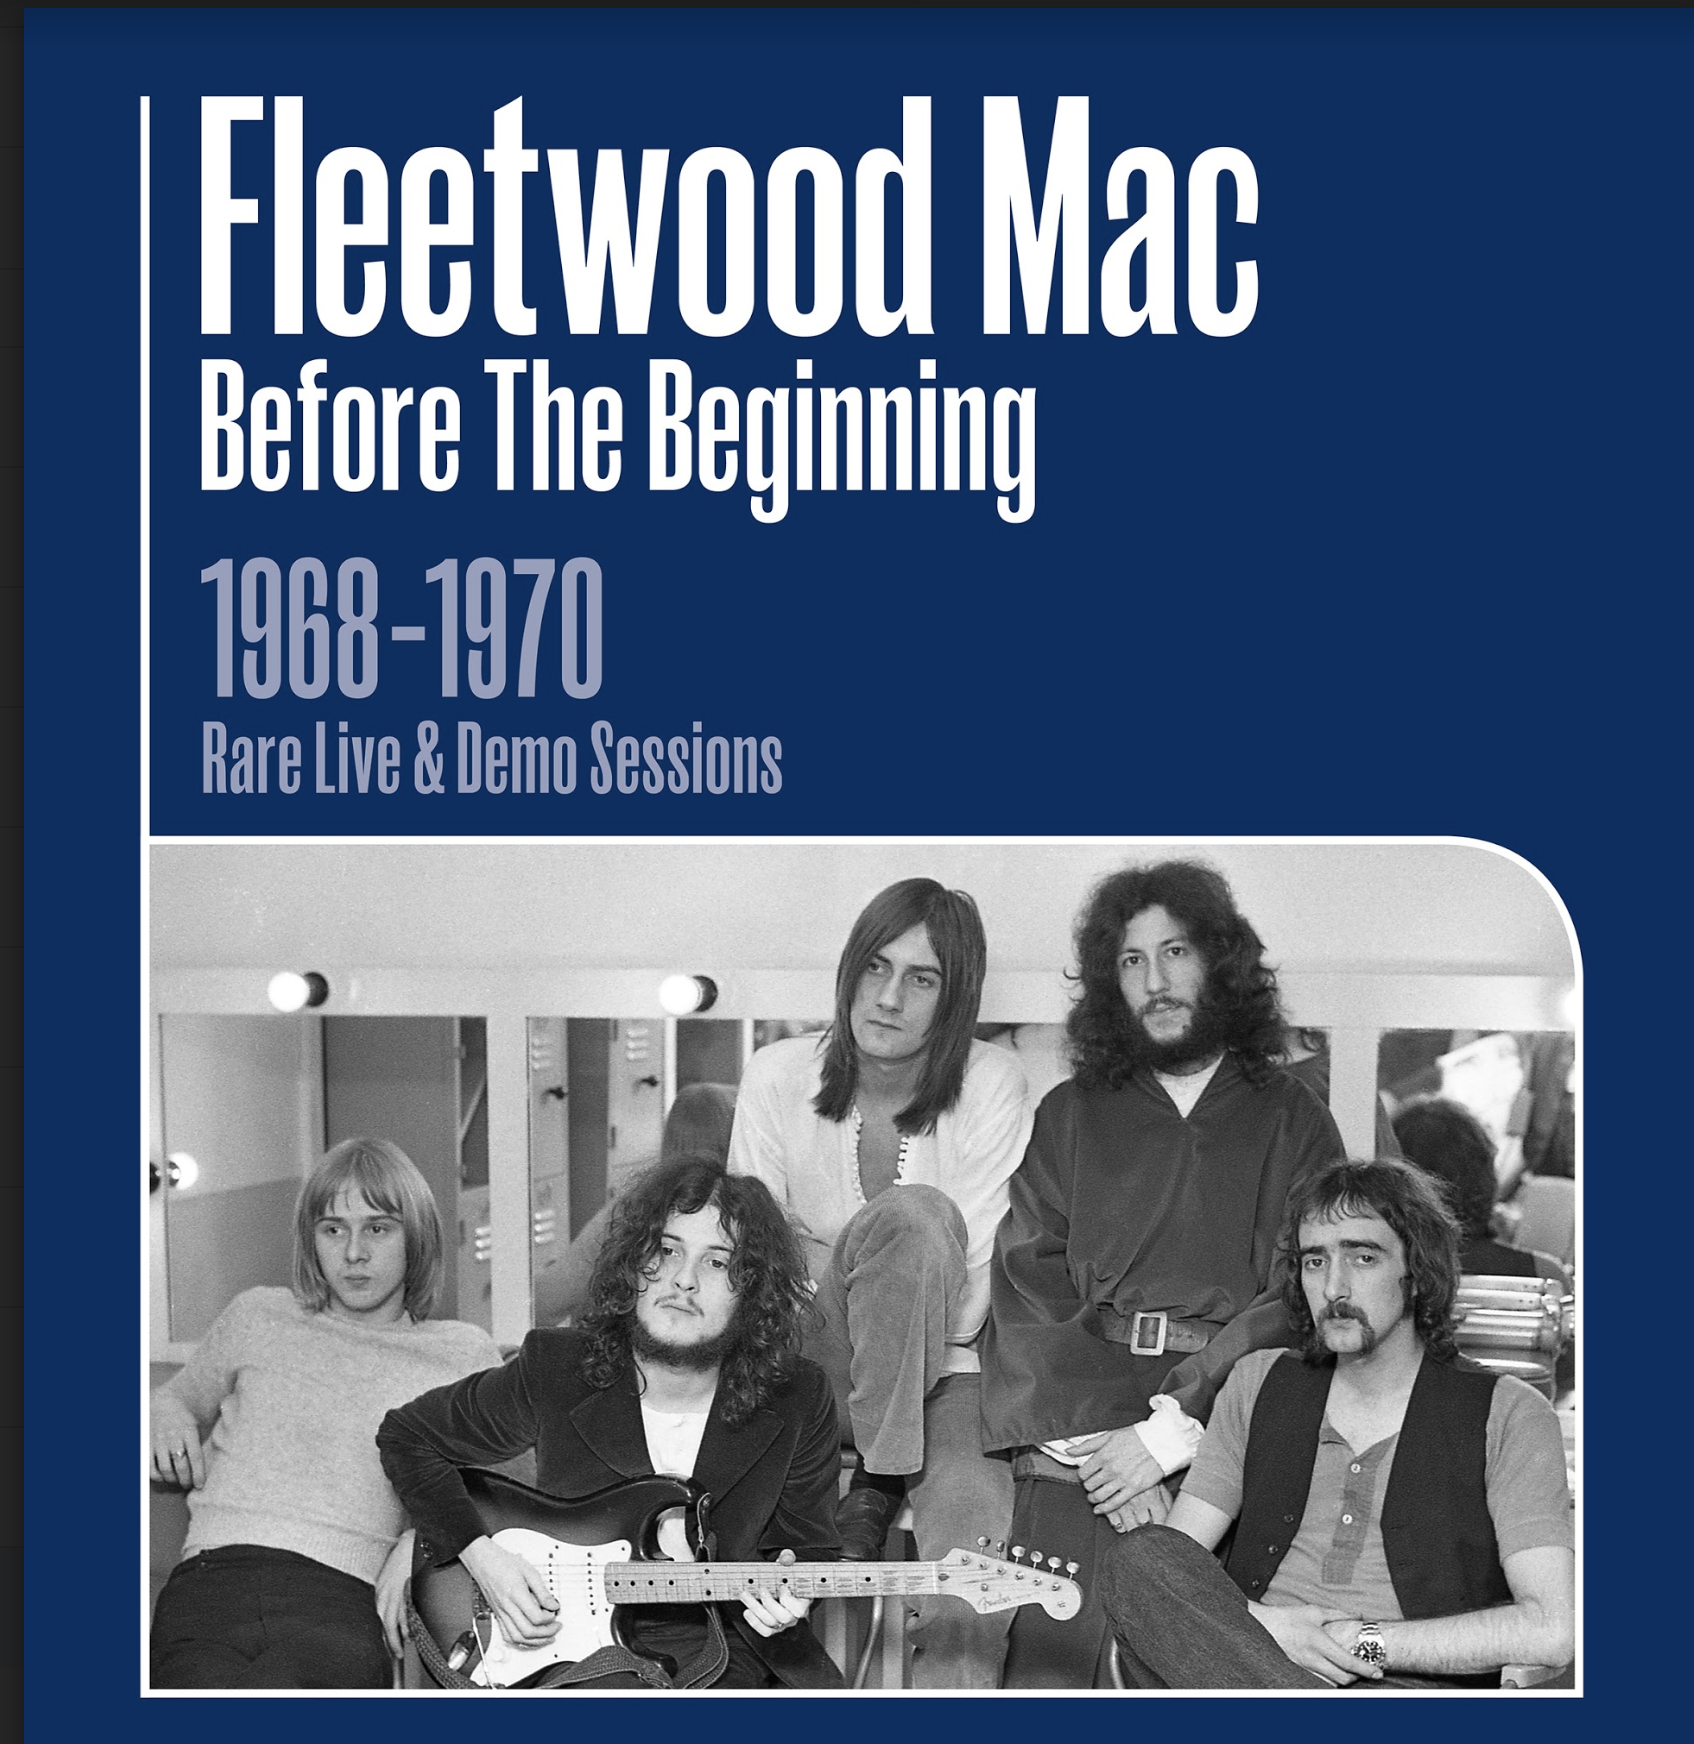 Fleetwood mac early rarities box set due best classic bands for Mac due the box